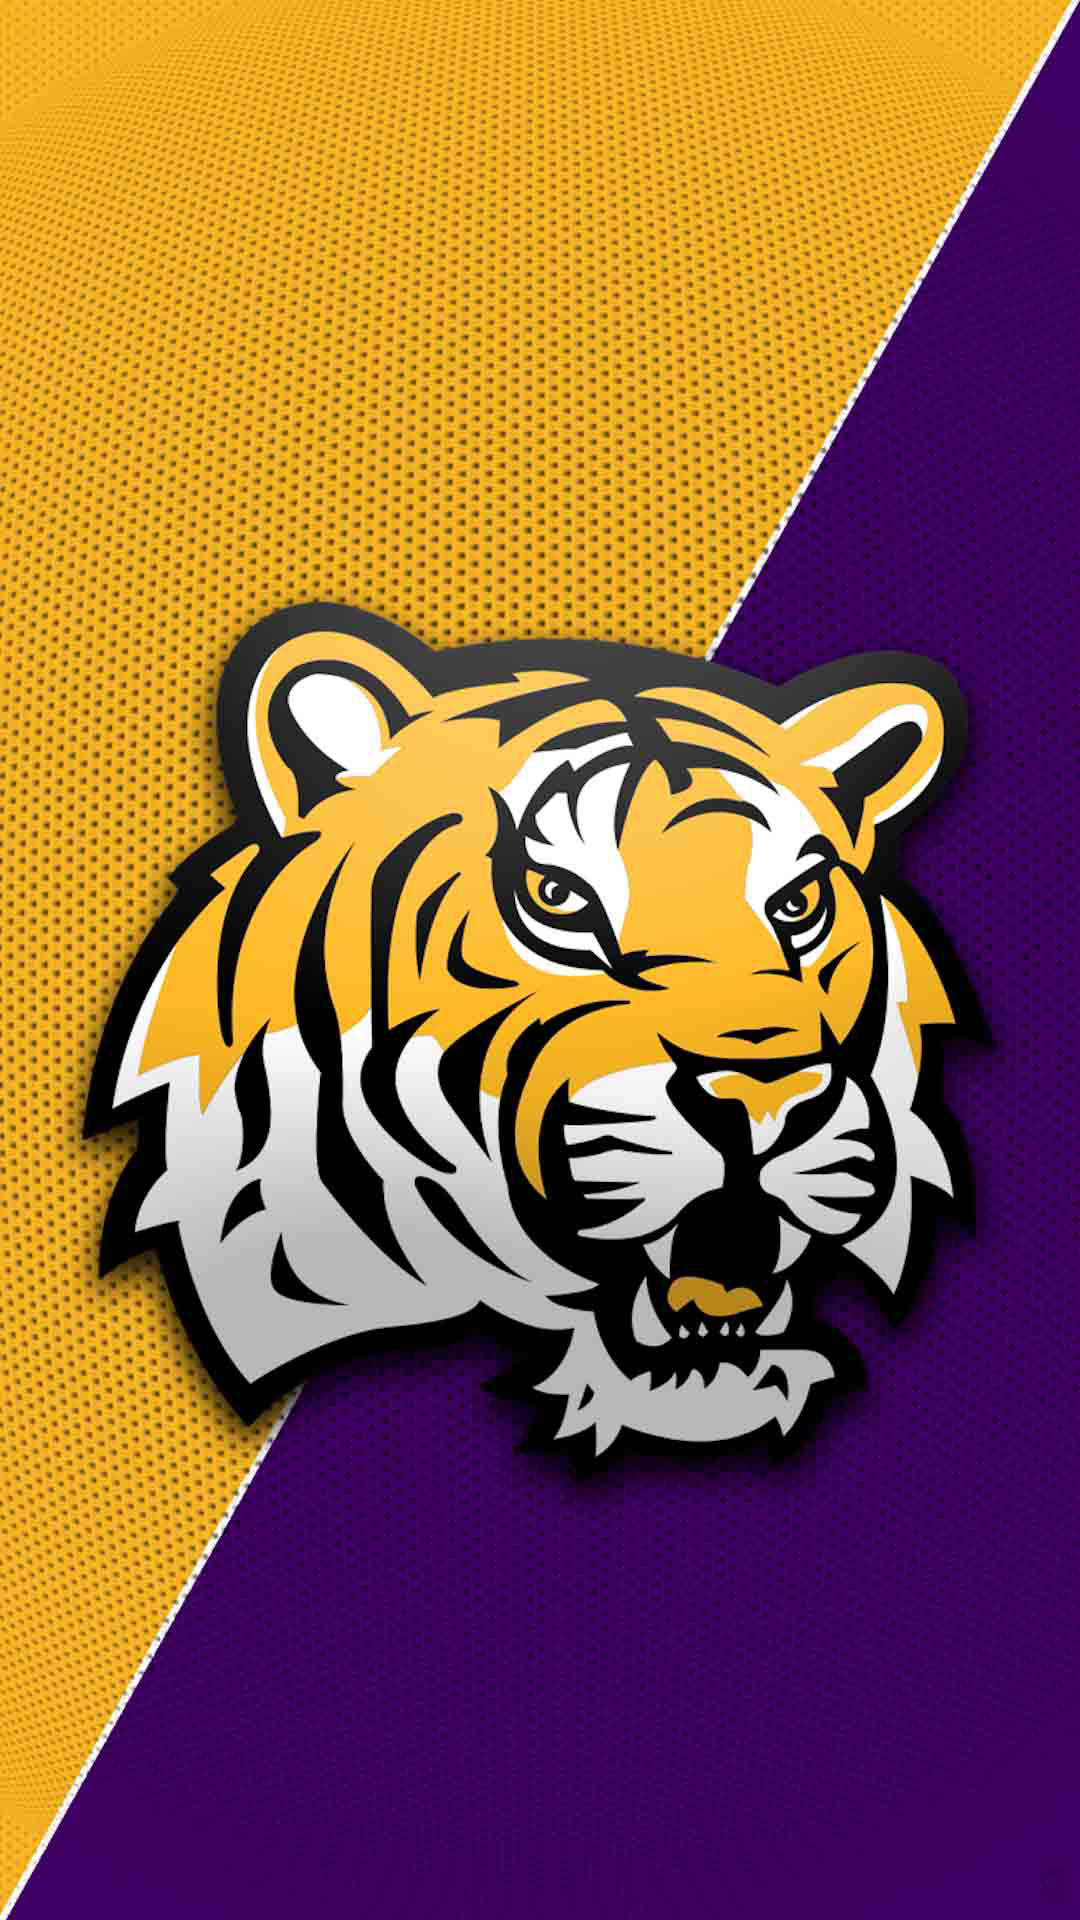 Lsu tigers wallpaper layouts backgrounds